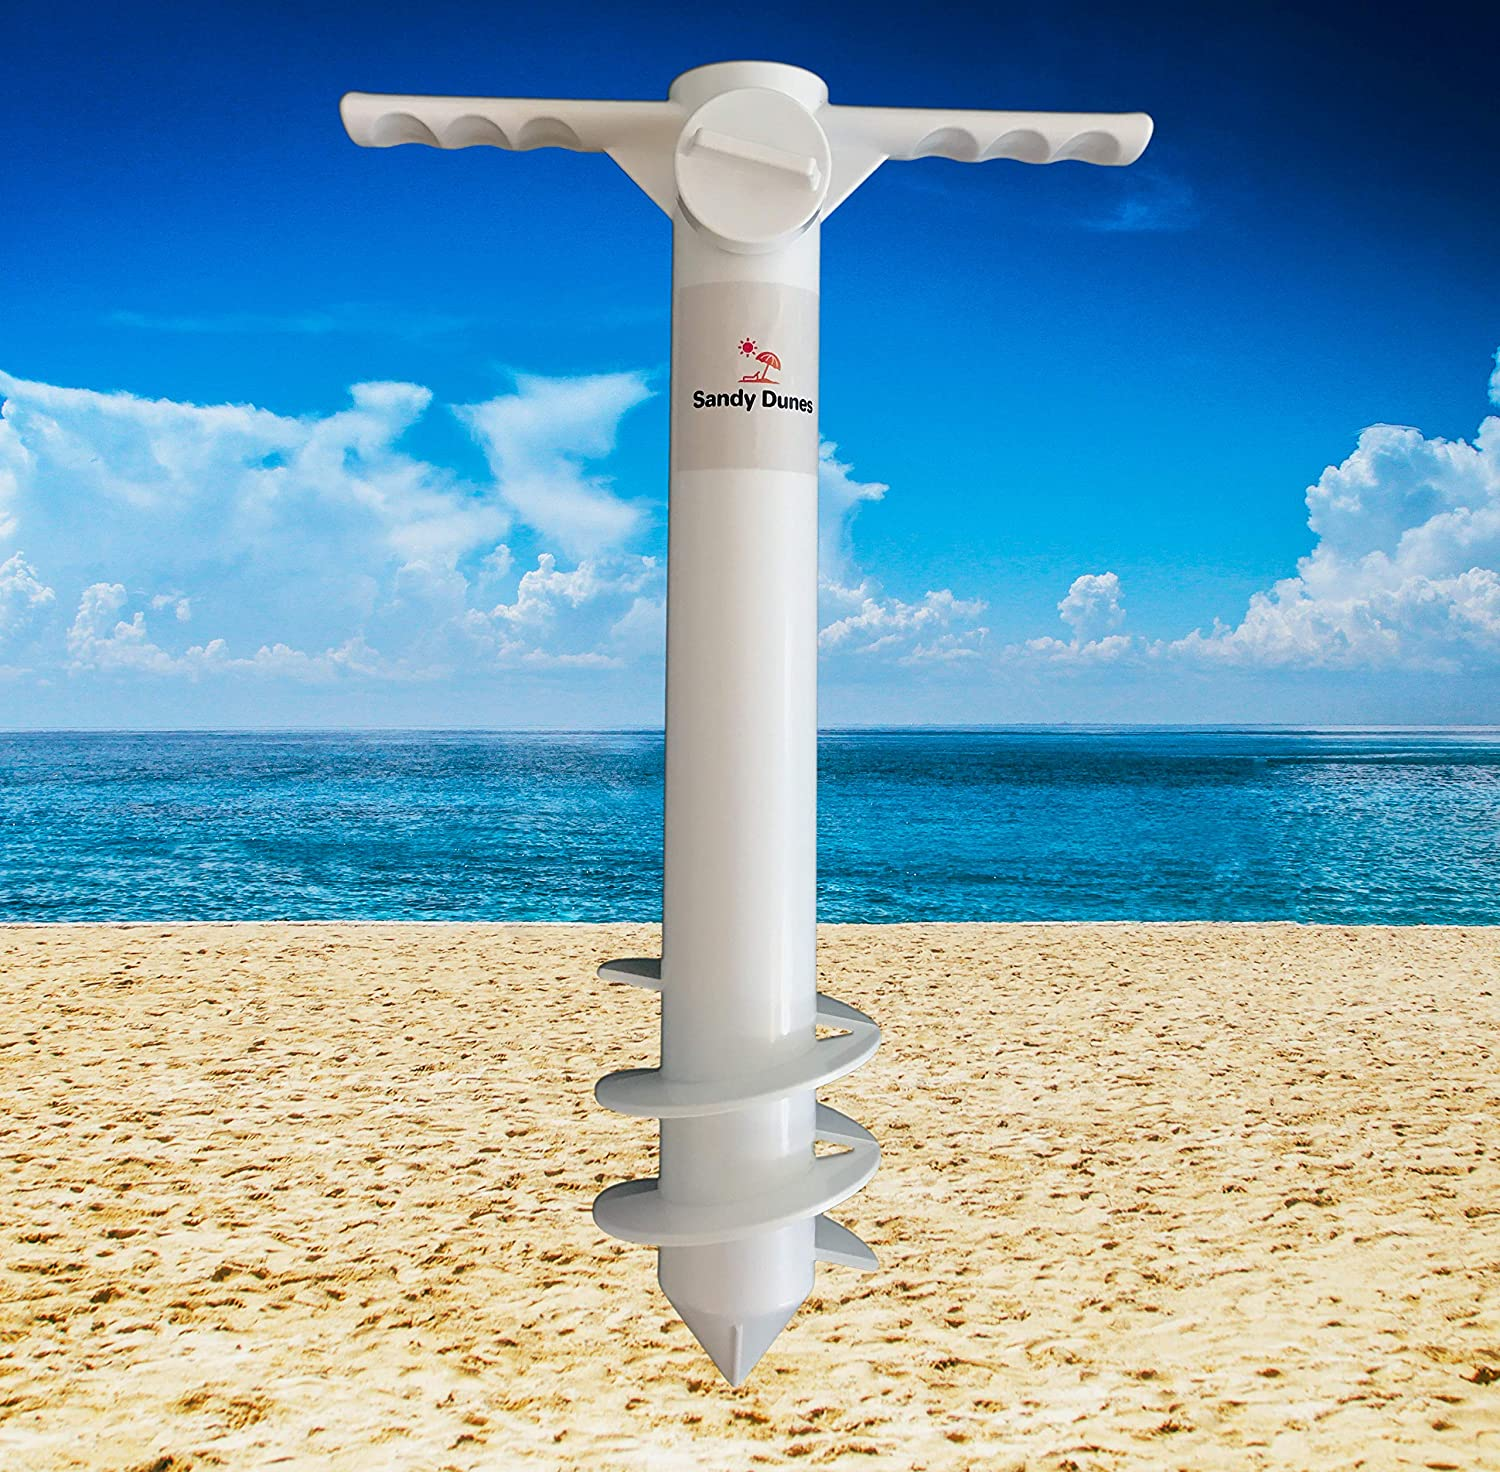 Sandy Dunes Beach Umbrella Sand Anchor One-Size-Fits-All Extra Strong, 3-Tier Screw To Withstand Tough Winds